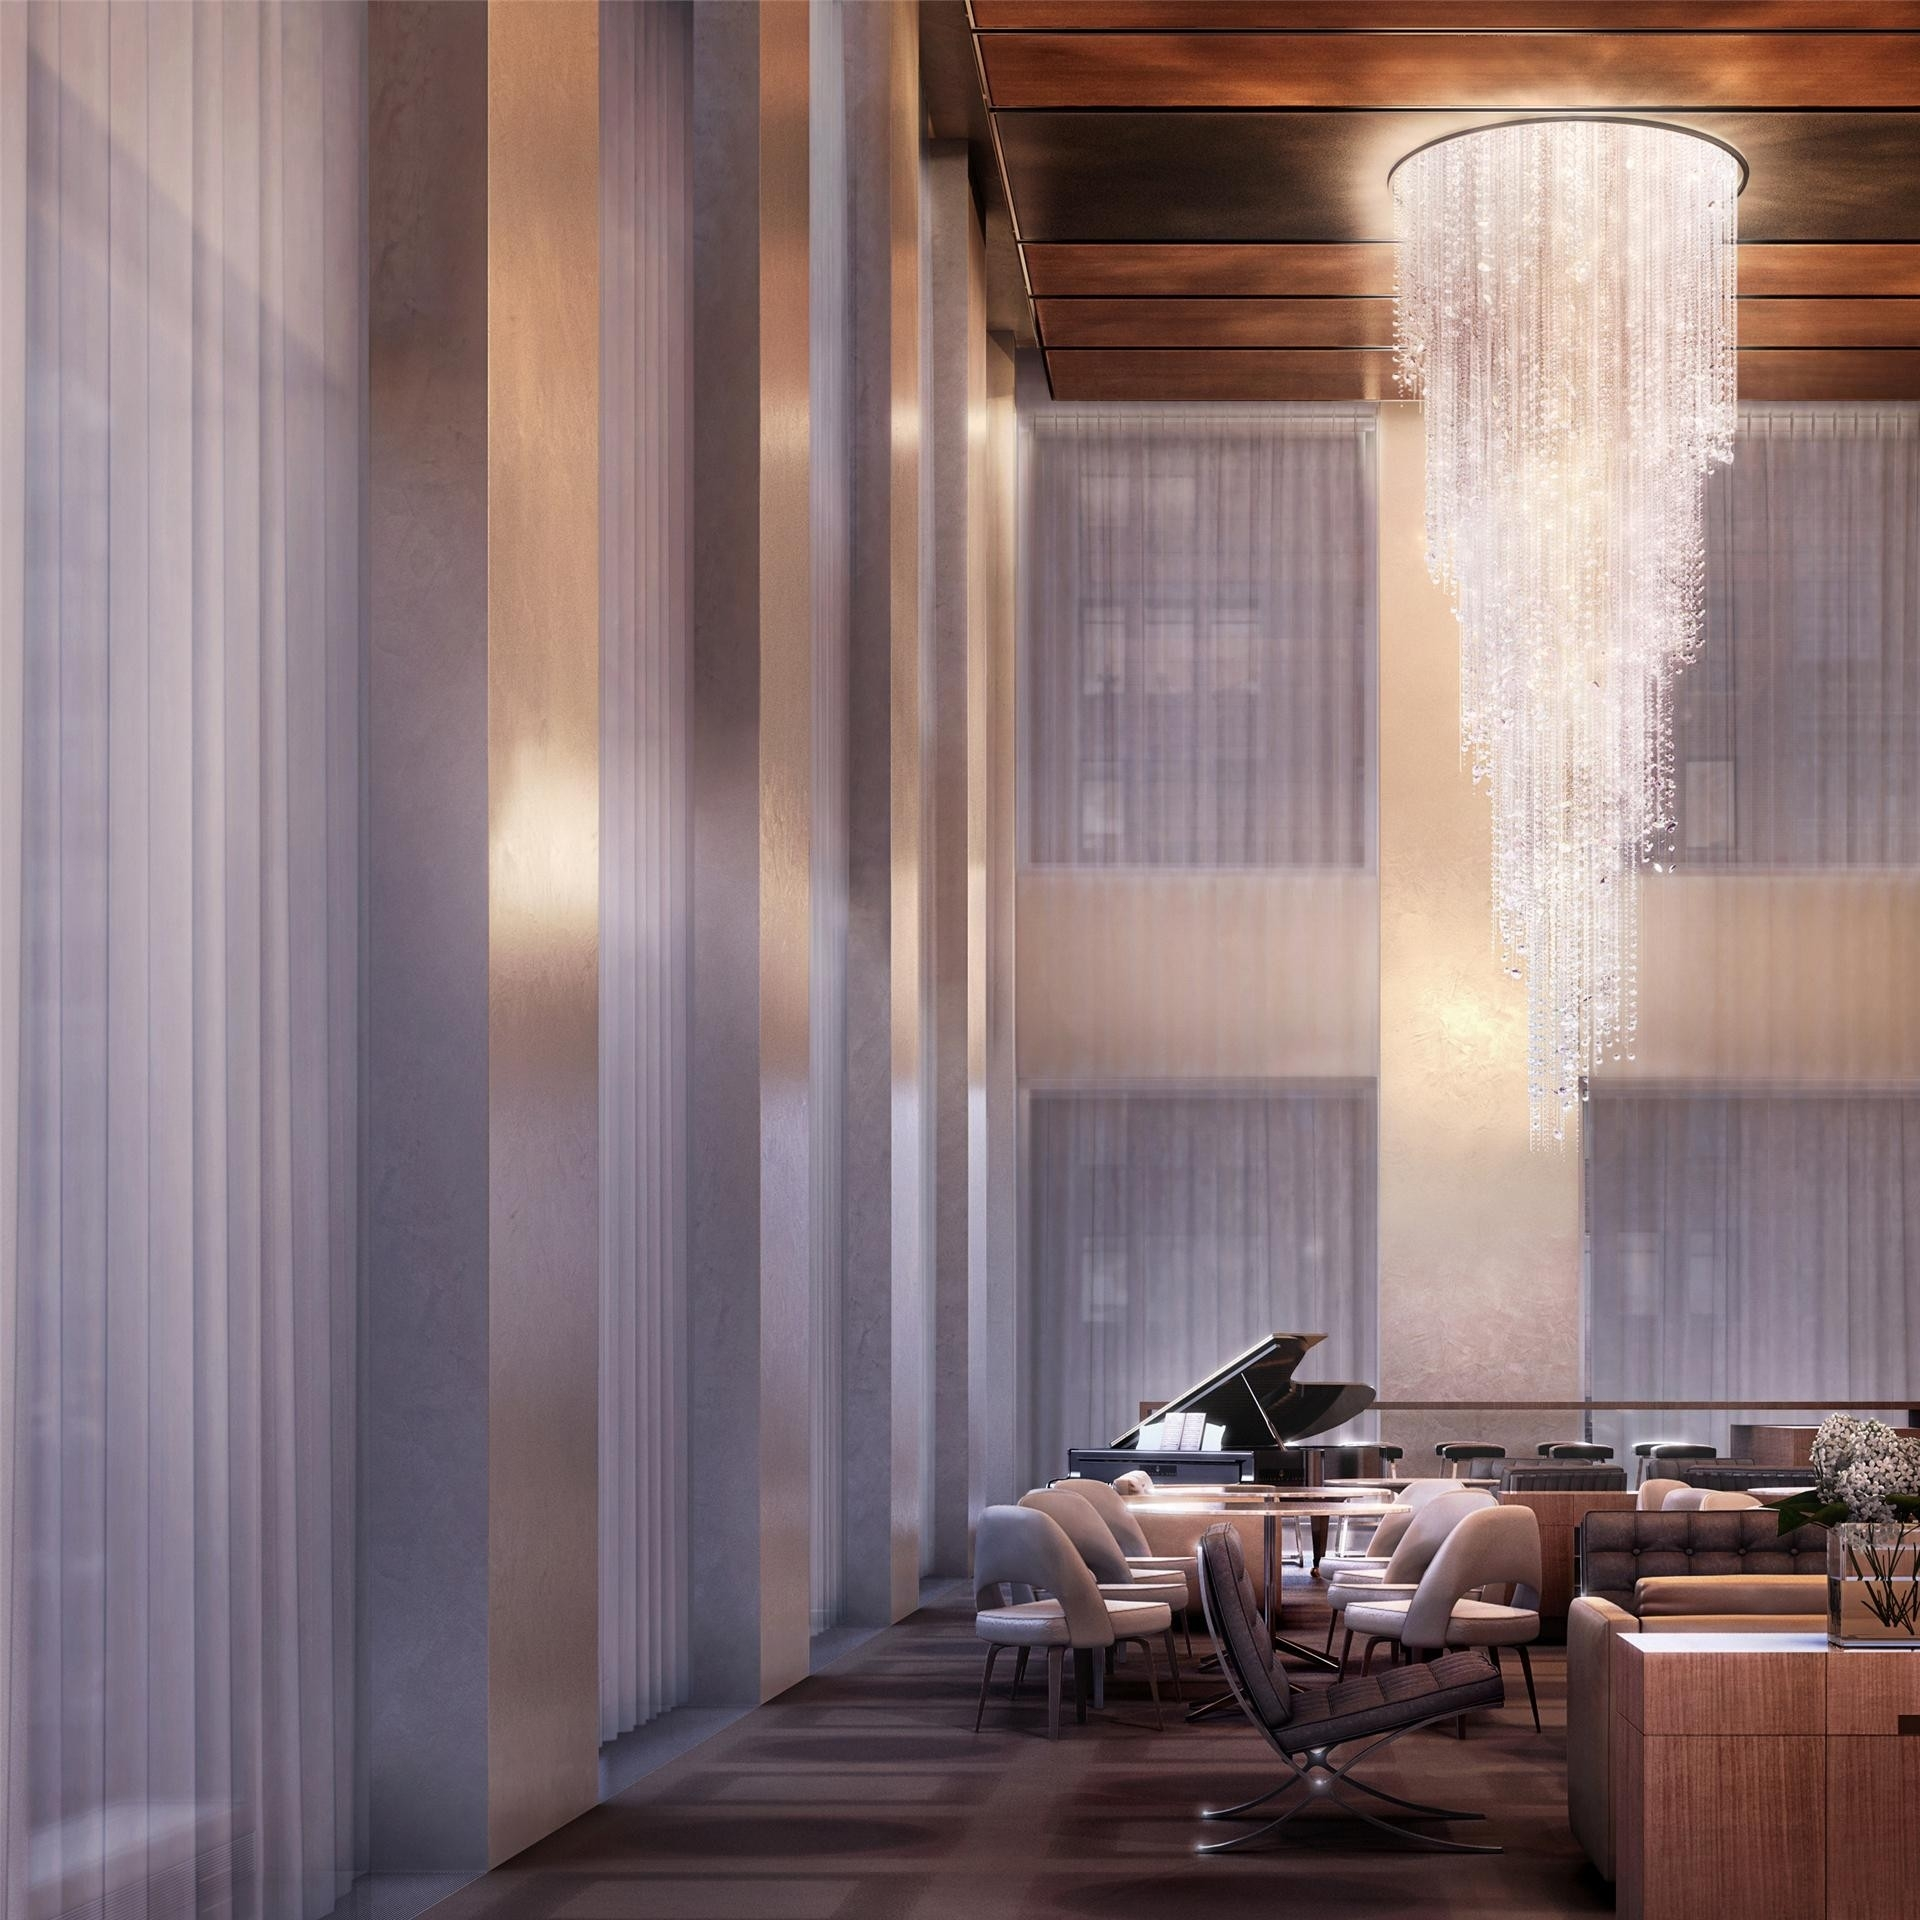 19. Condominiums for Sale at 432 Park Avenue, 29E Midtown East, New York, NY 10022